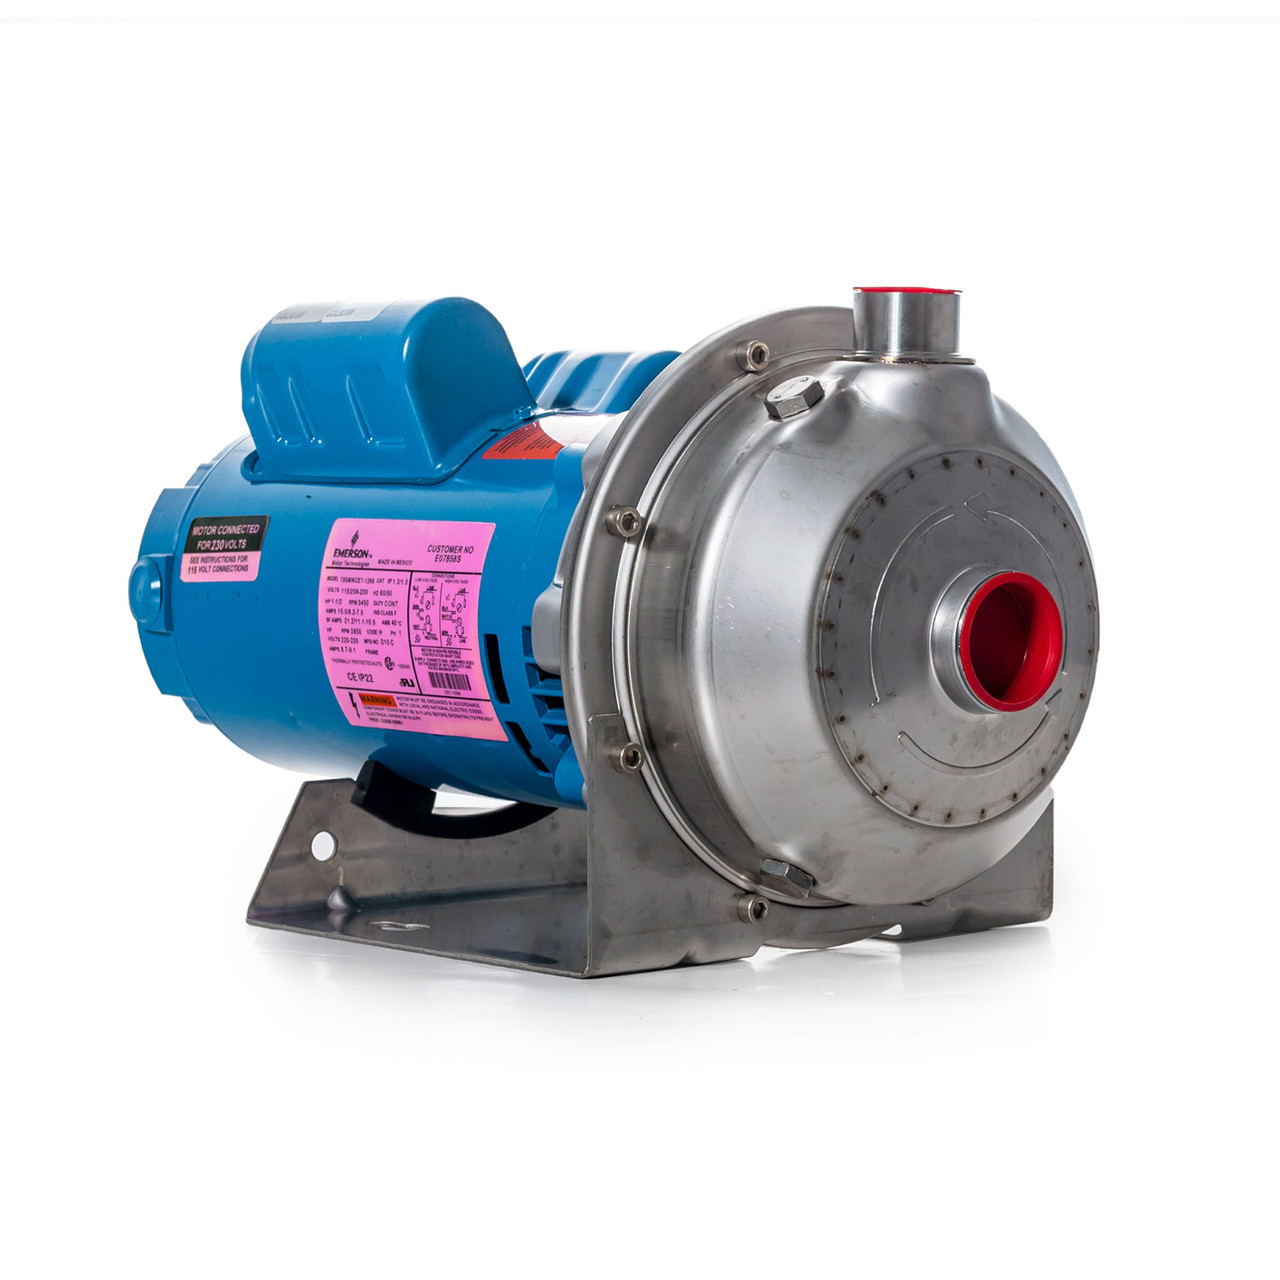 Gould Stainless Steel Sap Pump